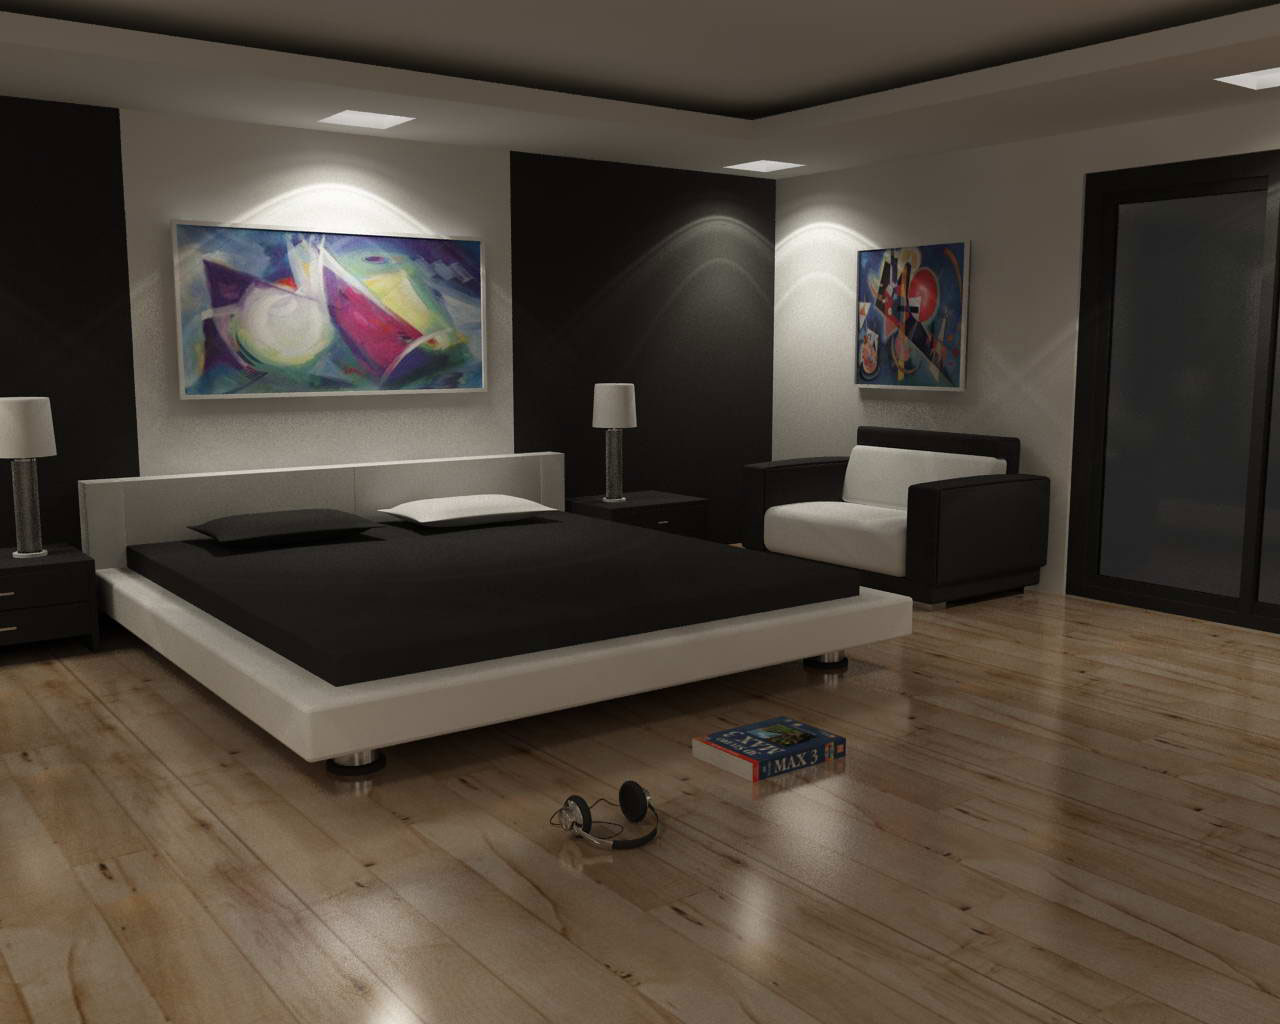 Image of: Cool bedroom design